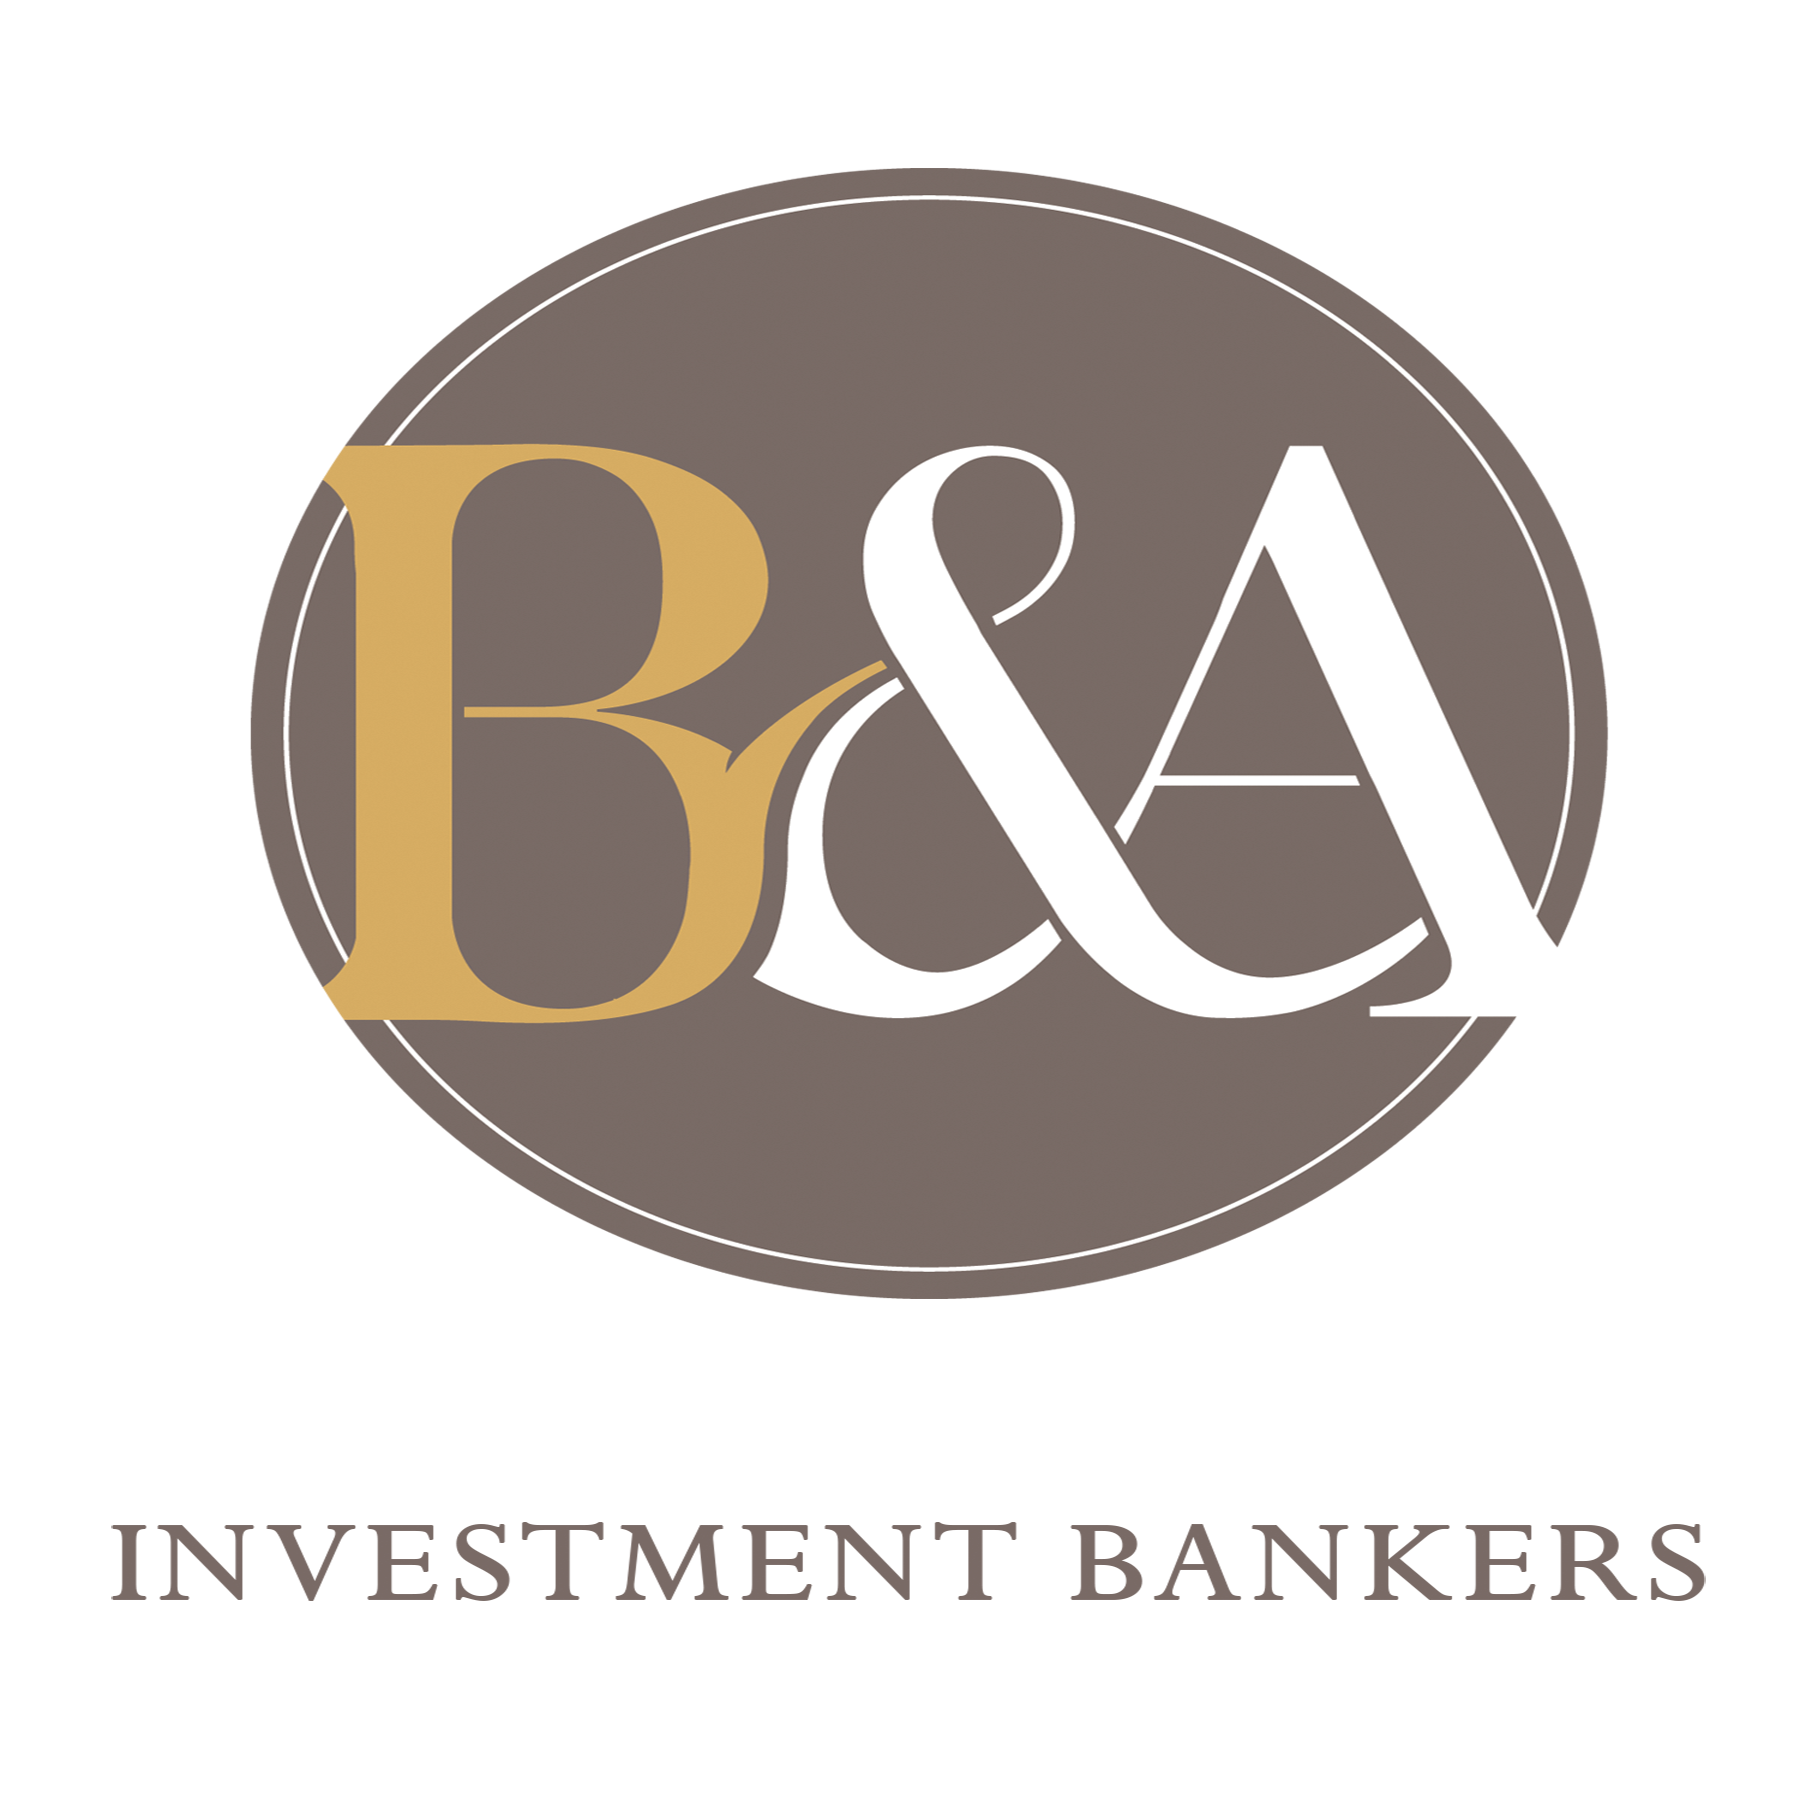 the B&a Investment Bankers logo.